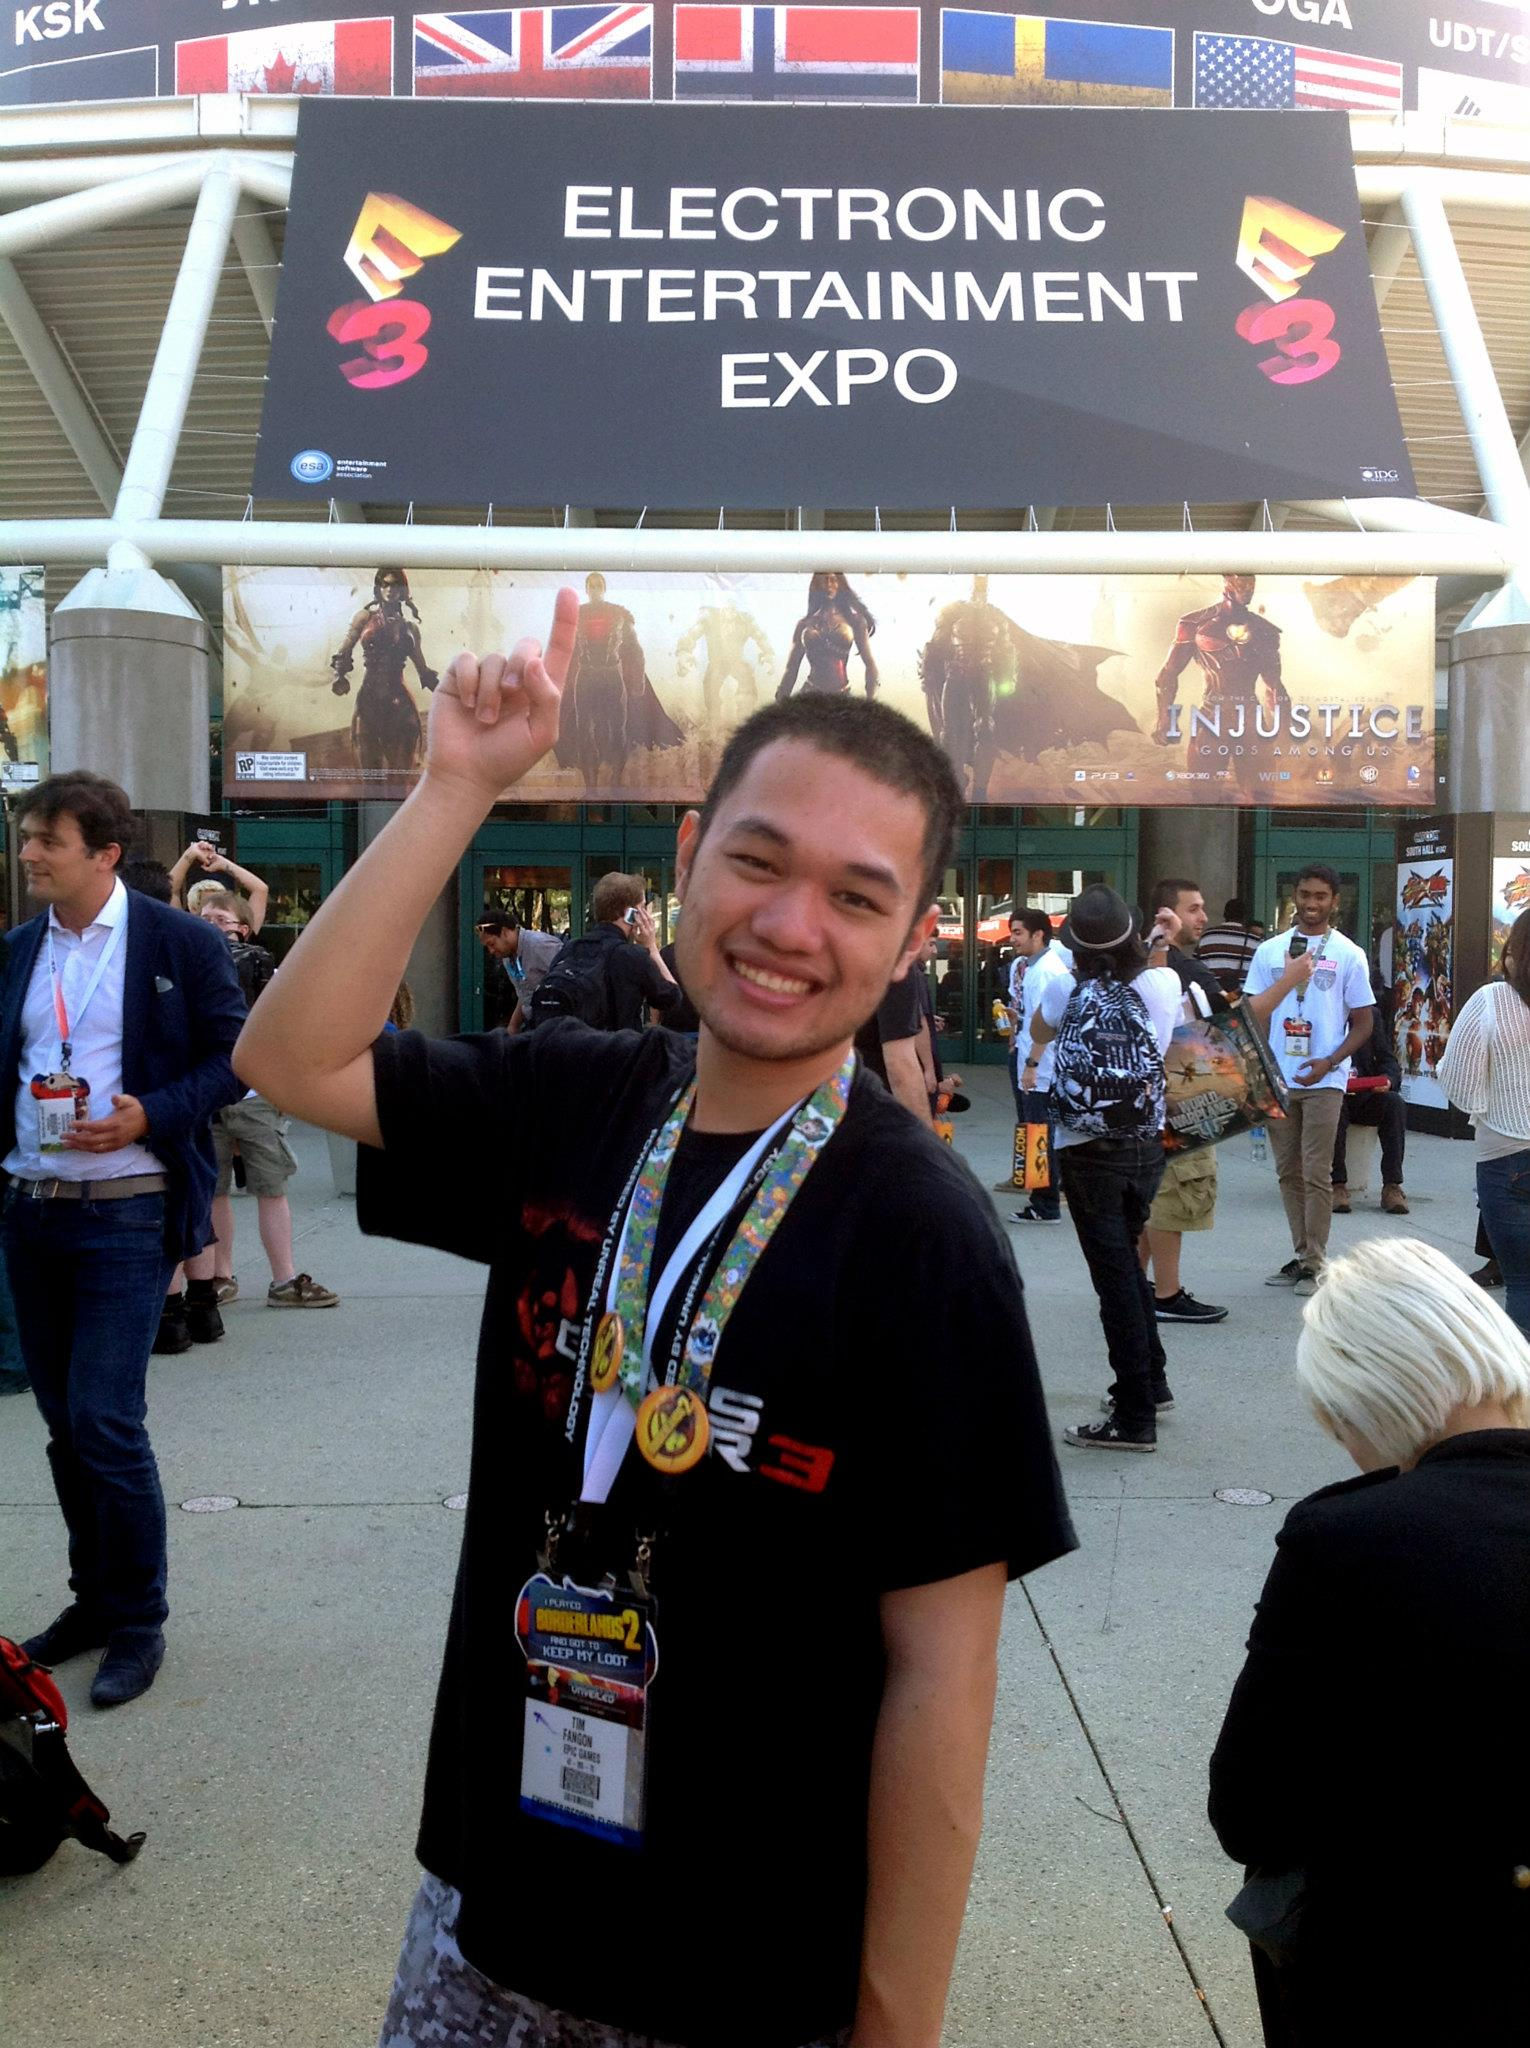 Tim Fangon E3 2012 Epic Gamer